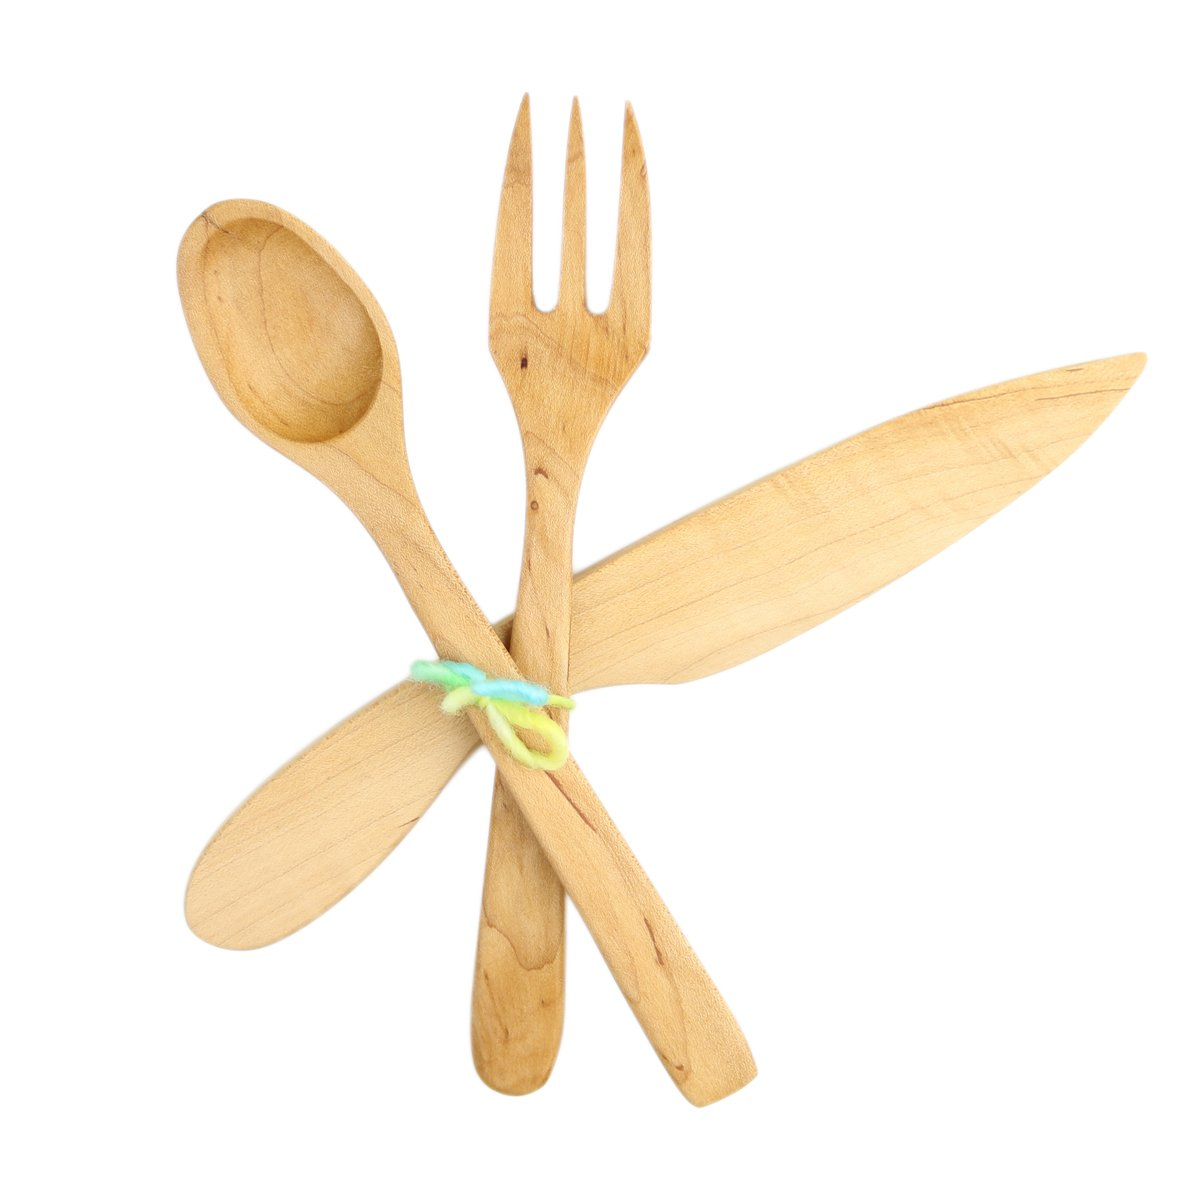 Wooden Spoon And Fork - Best Fork 2018